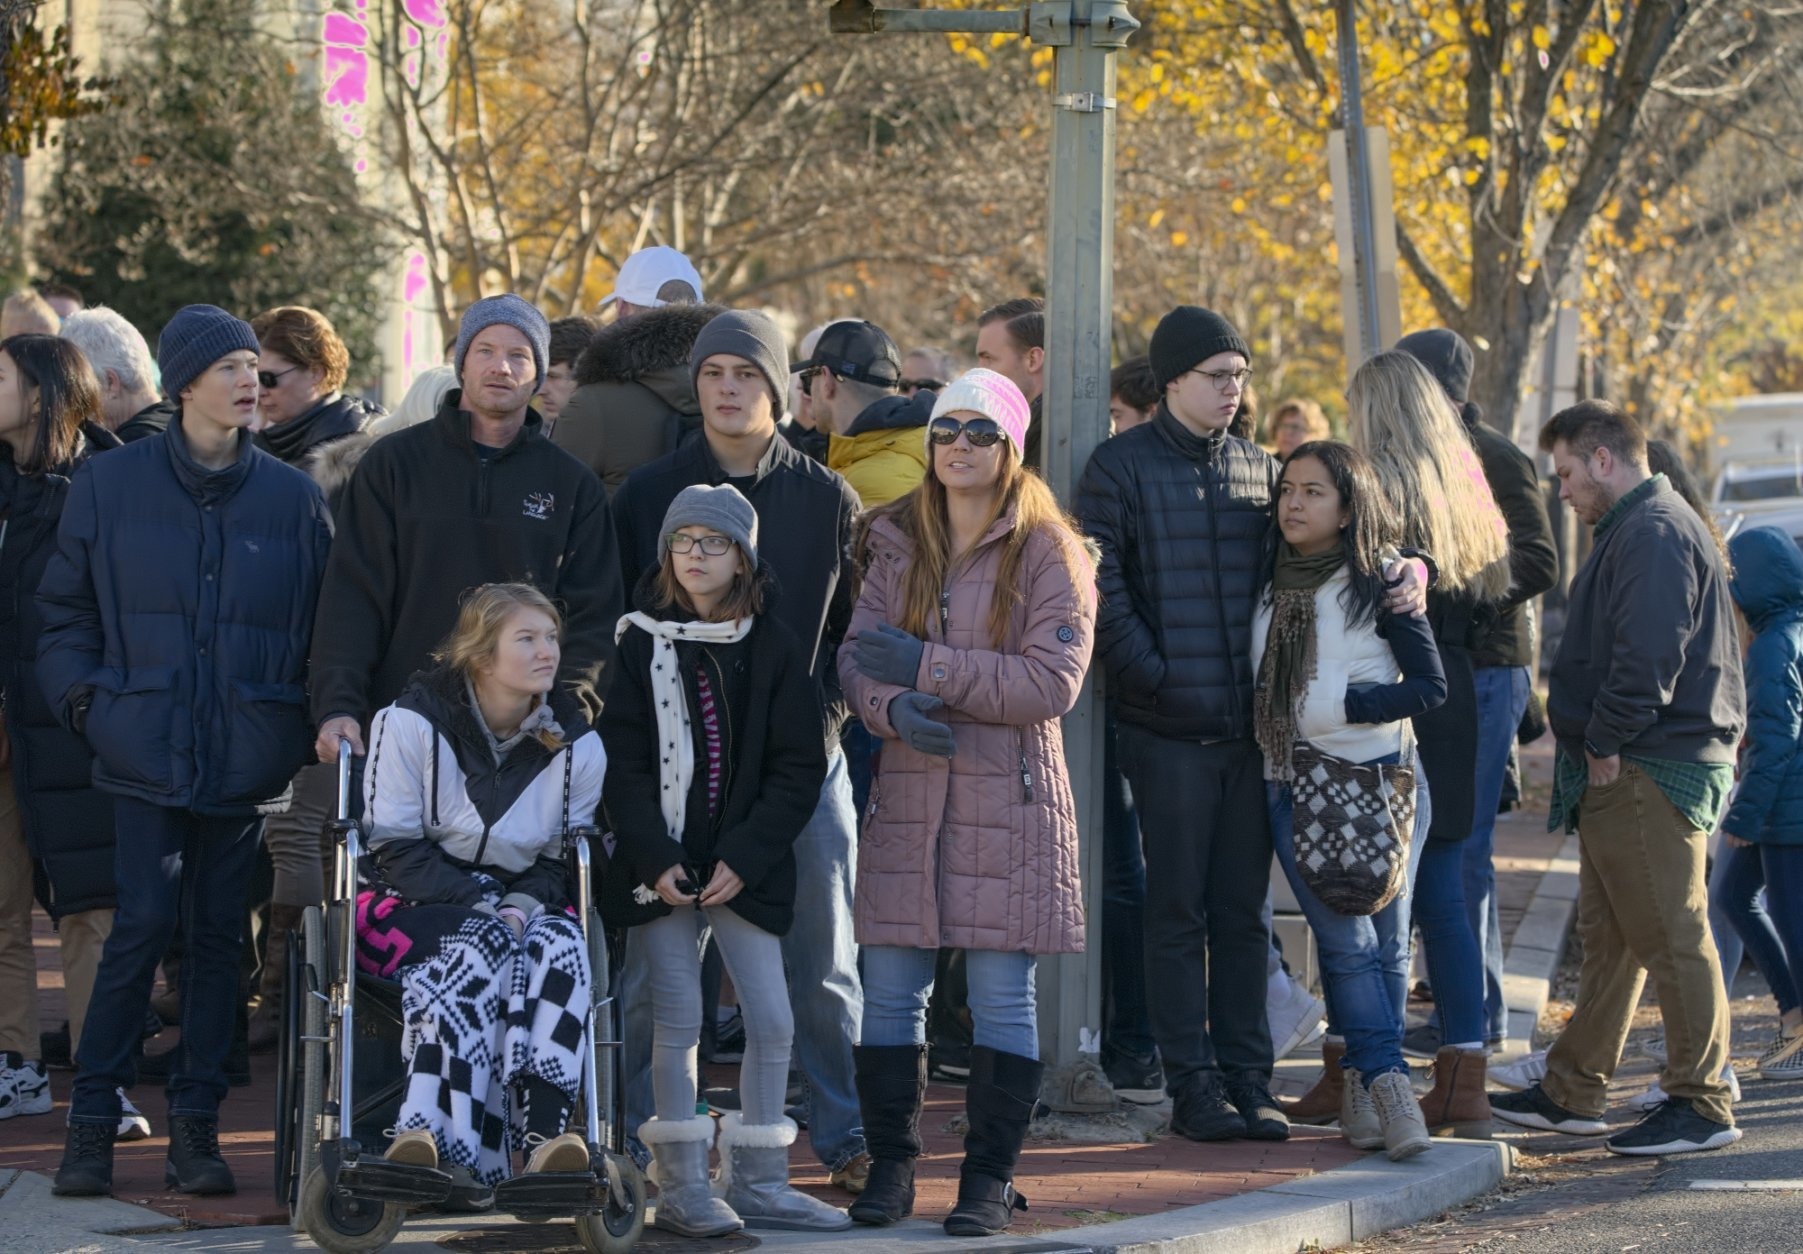 People are kept at a safe distance as the U.S. Capitol and its office buildings were briefly evacuated amid concerns about a small aircraft in the area, in Washington, Tuesday, Nov. 26, 2019. (AP Photo/J. Scott Applewhite)